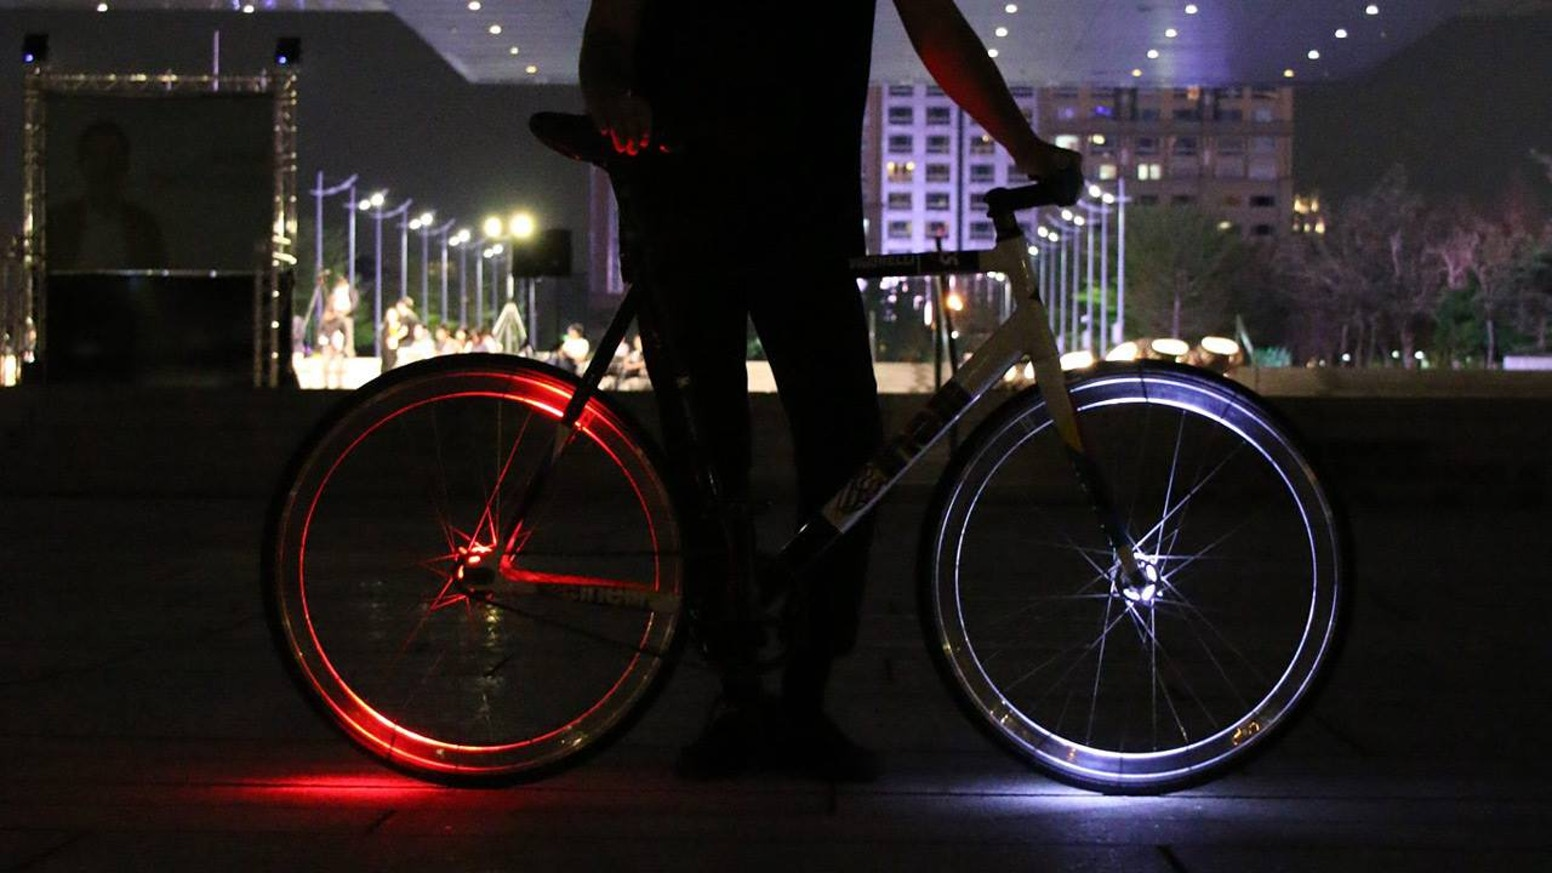 Smallest & lightest wheel bike light to improve your ride visibility and safety at night.